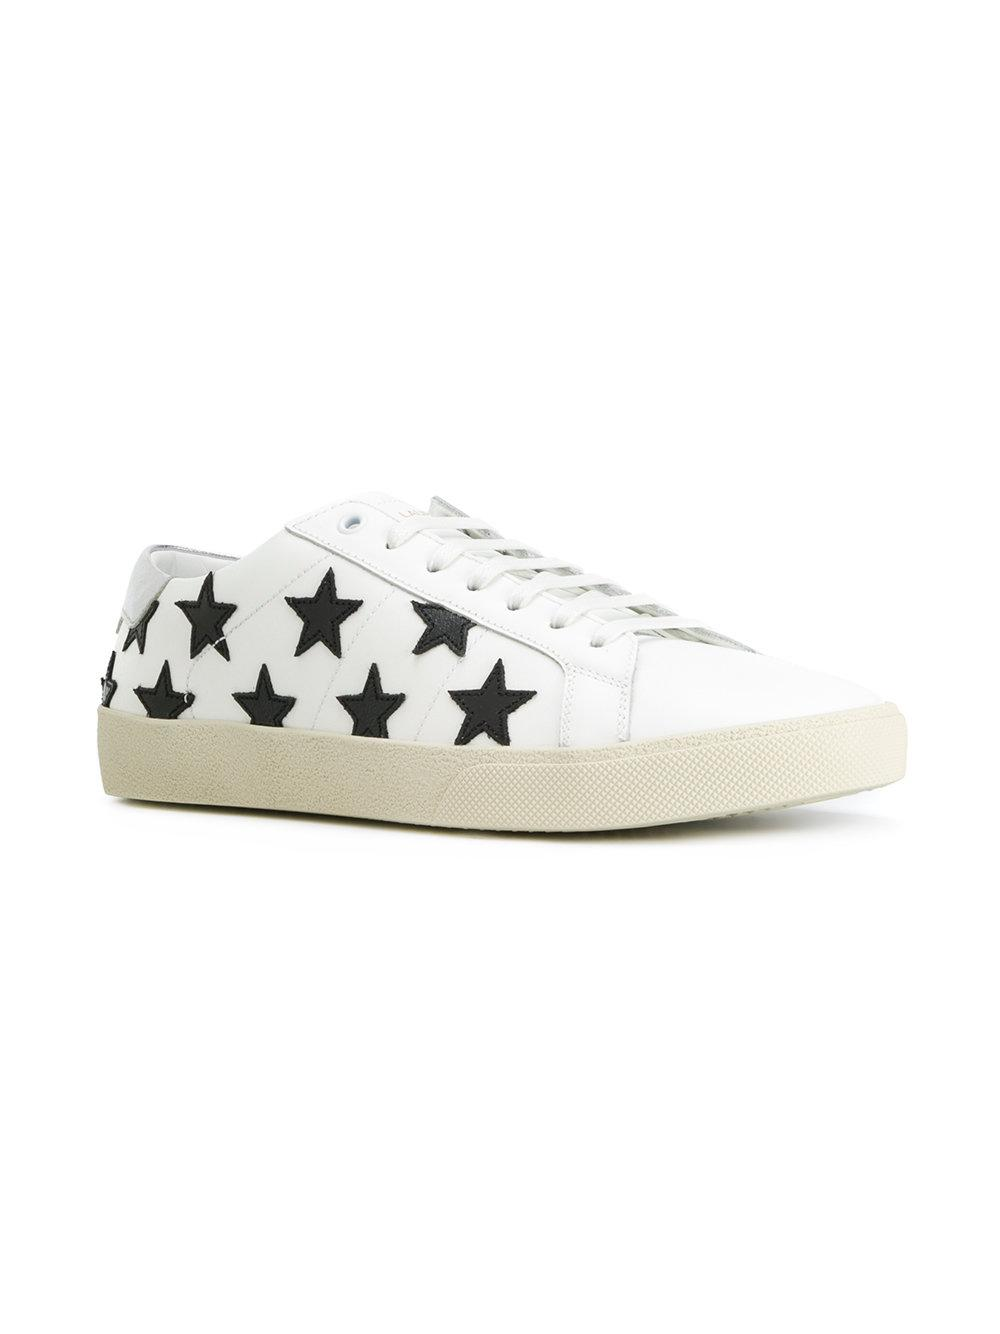 c75bf5cbb87e6 Lyst - Saint Laurent Heart Printed Sneakers in White - Save 45%